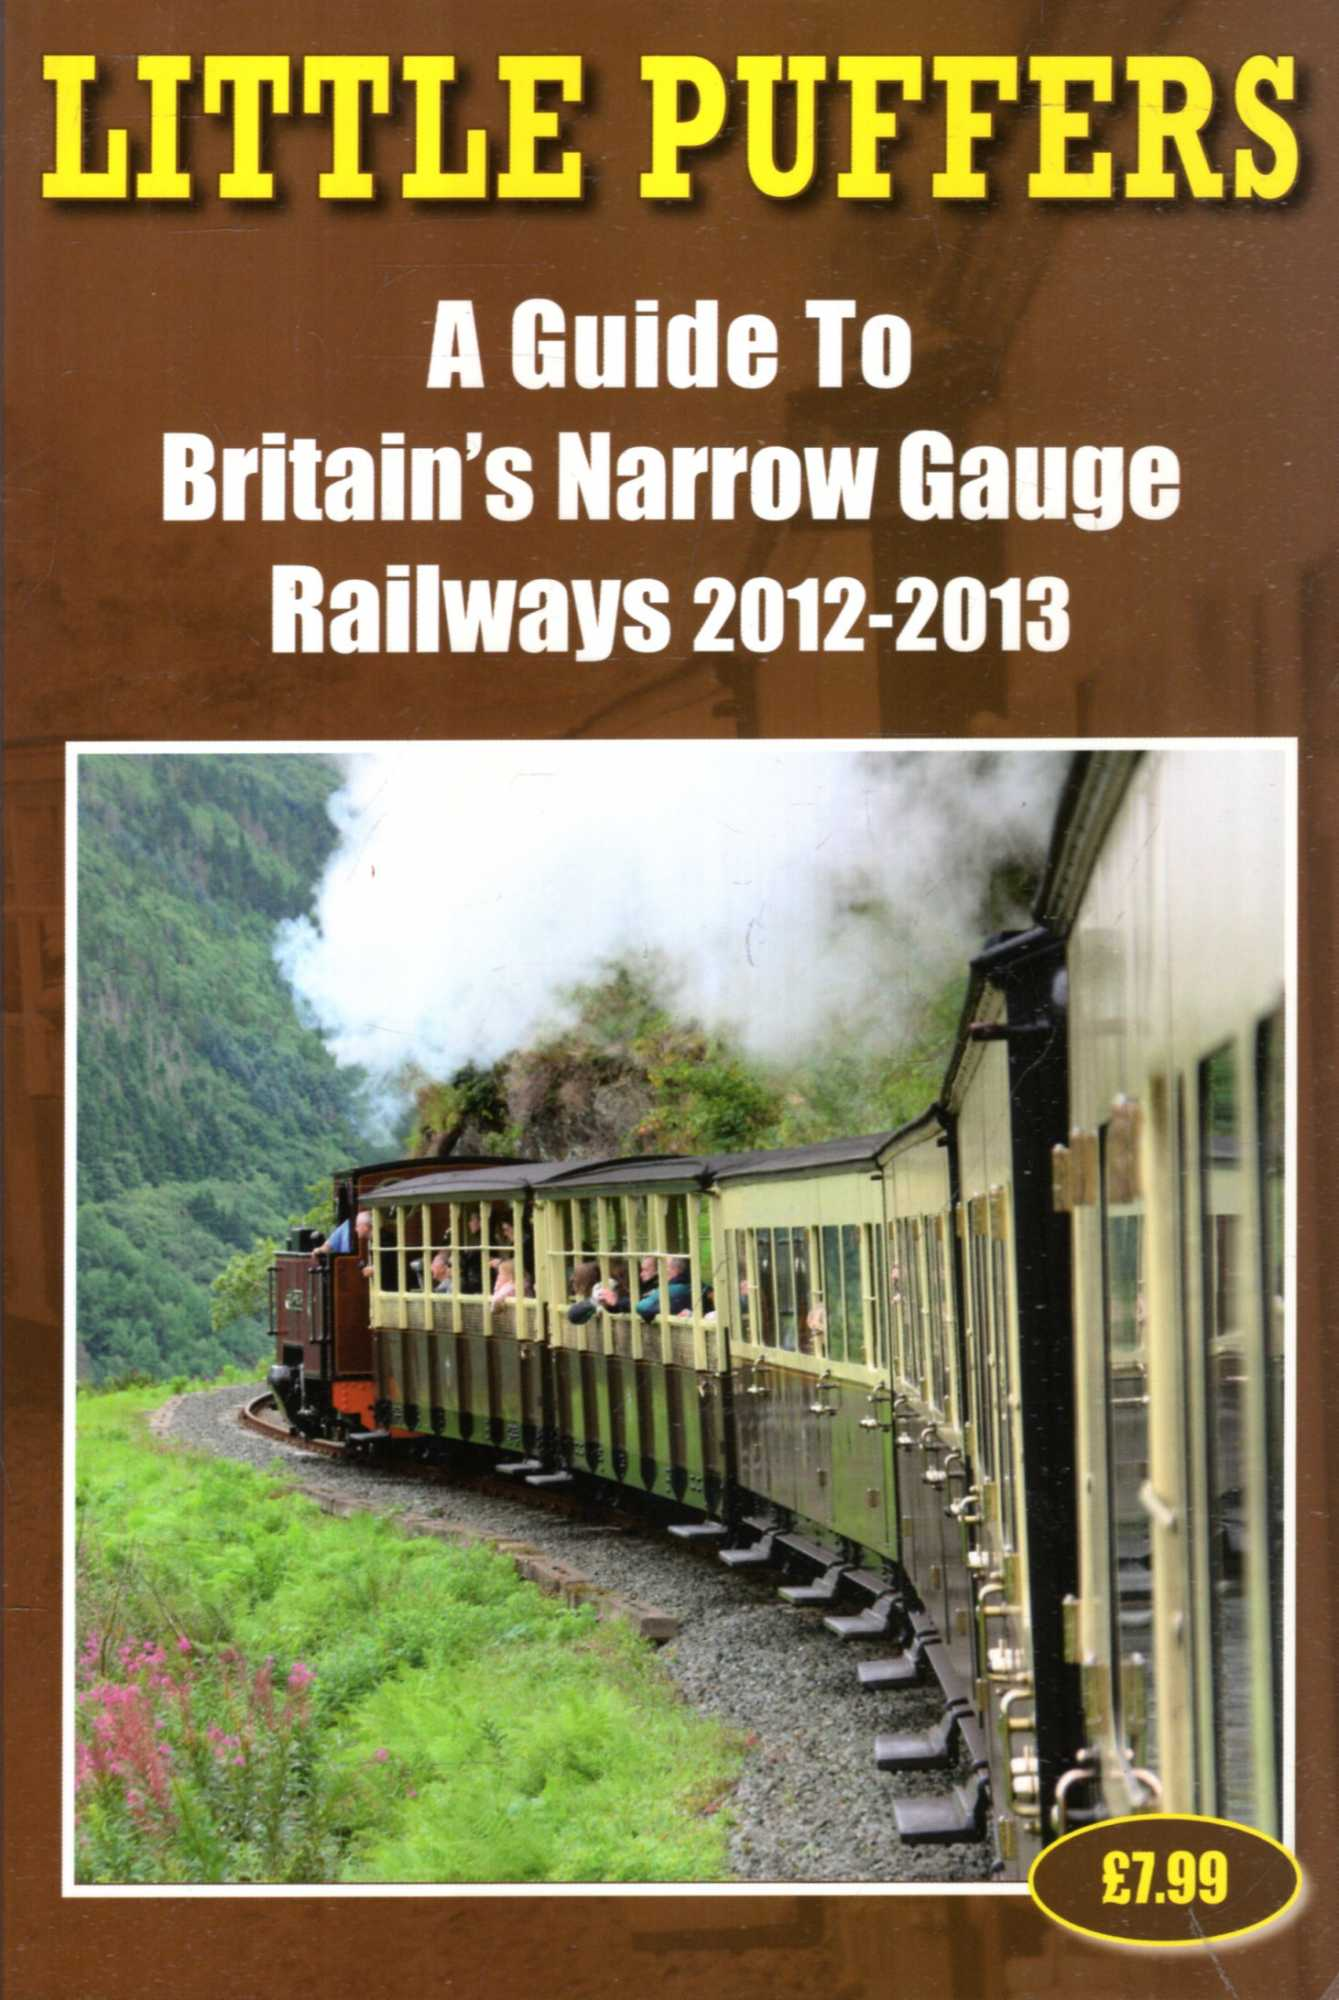 Image for Little Puffers - A Guide to Britain's Narrow Gauge Railways 2012-2013